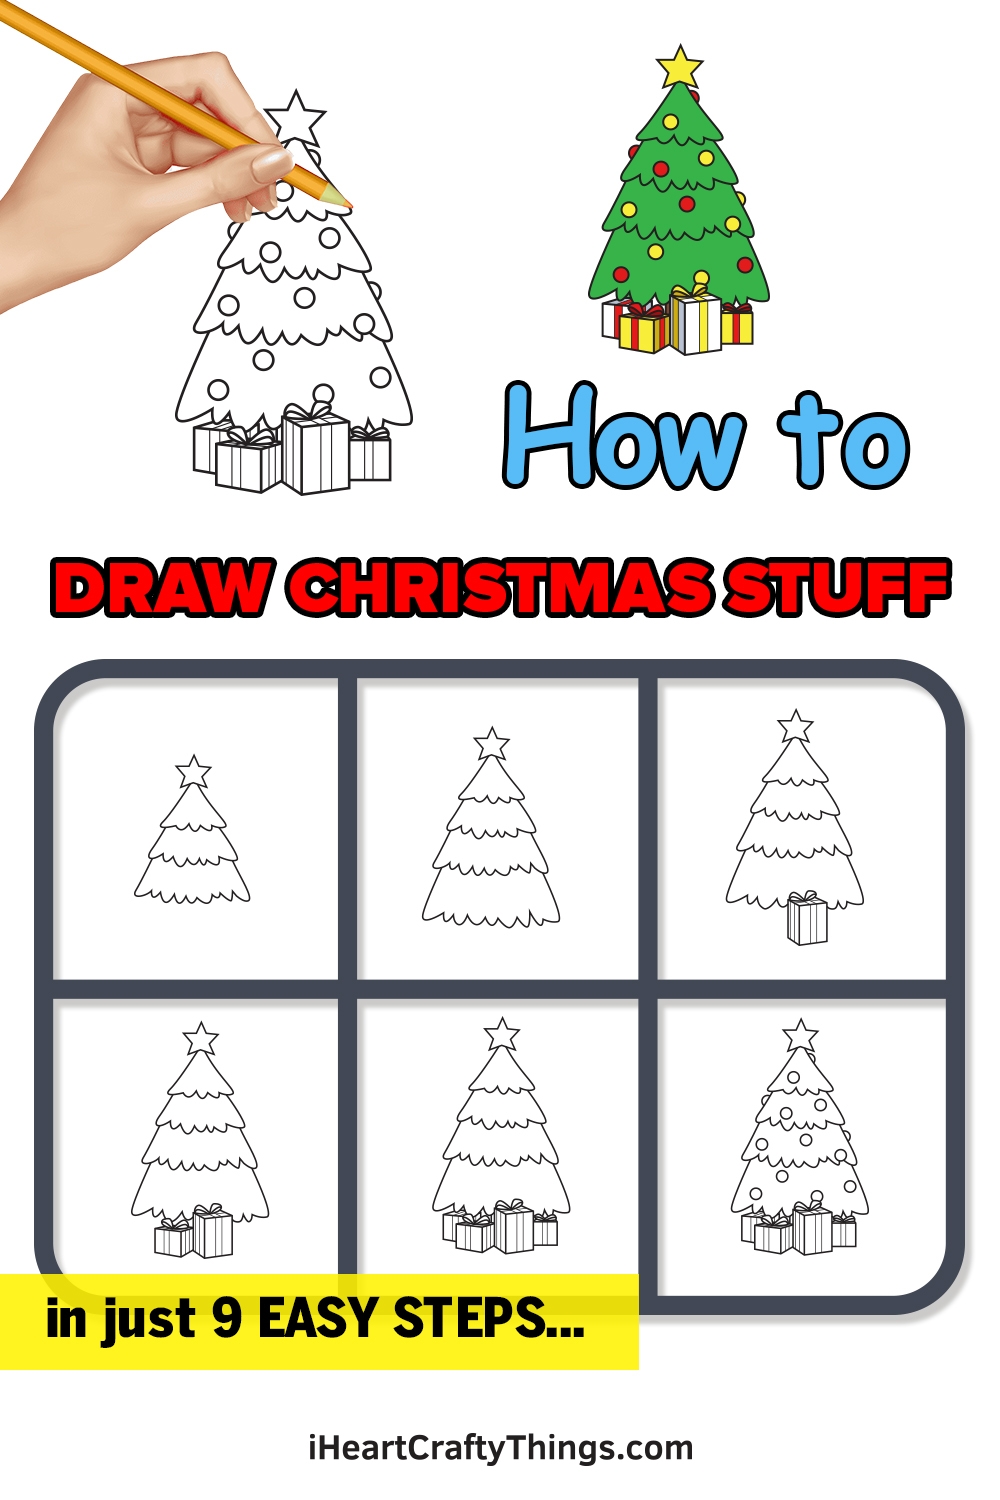 how to draw christmas stuff in 9 easy steps